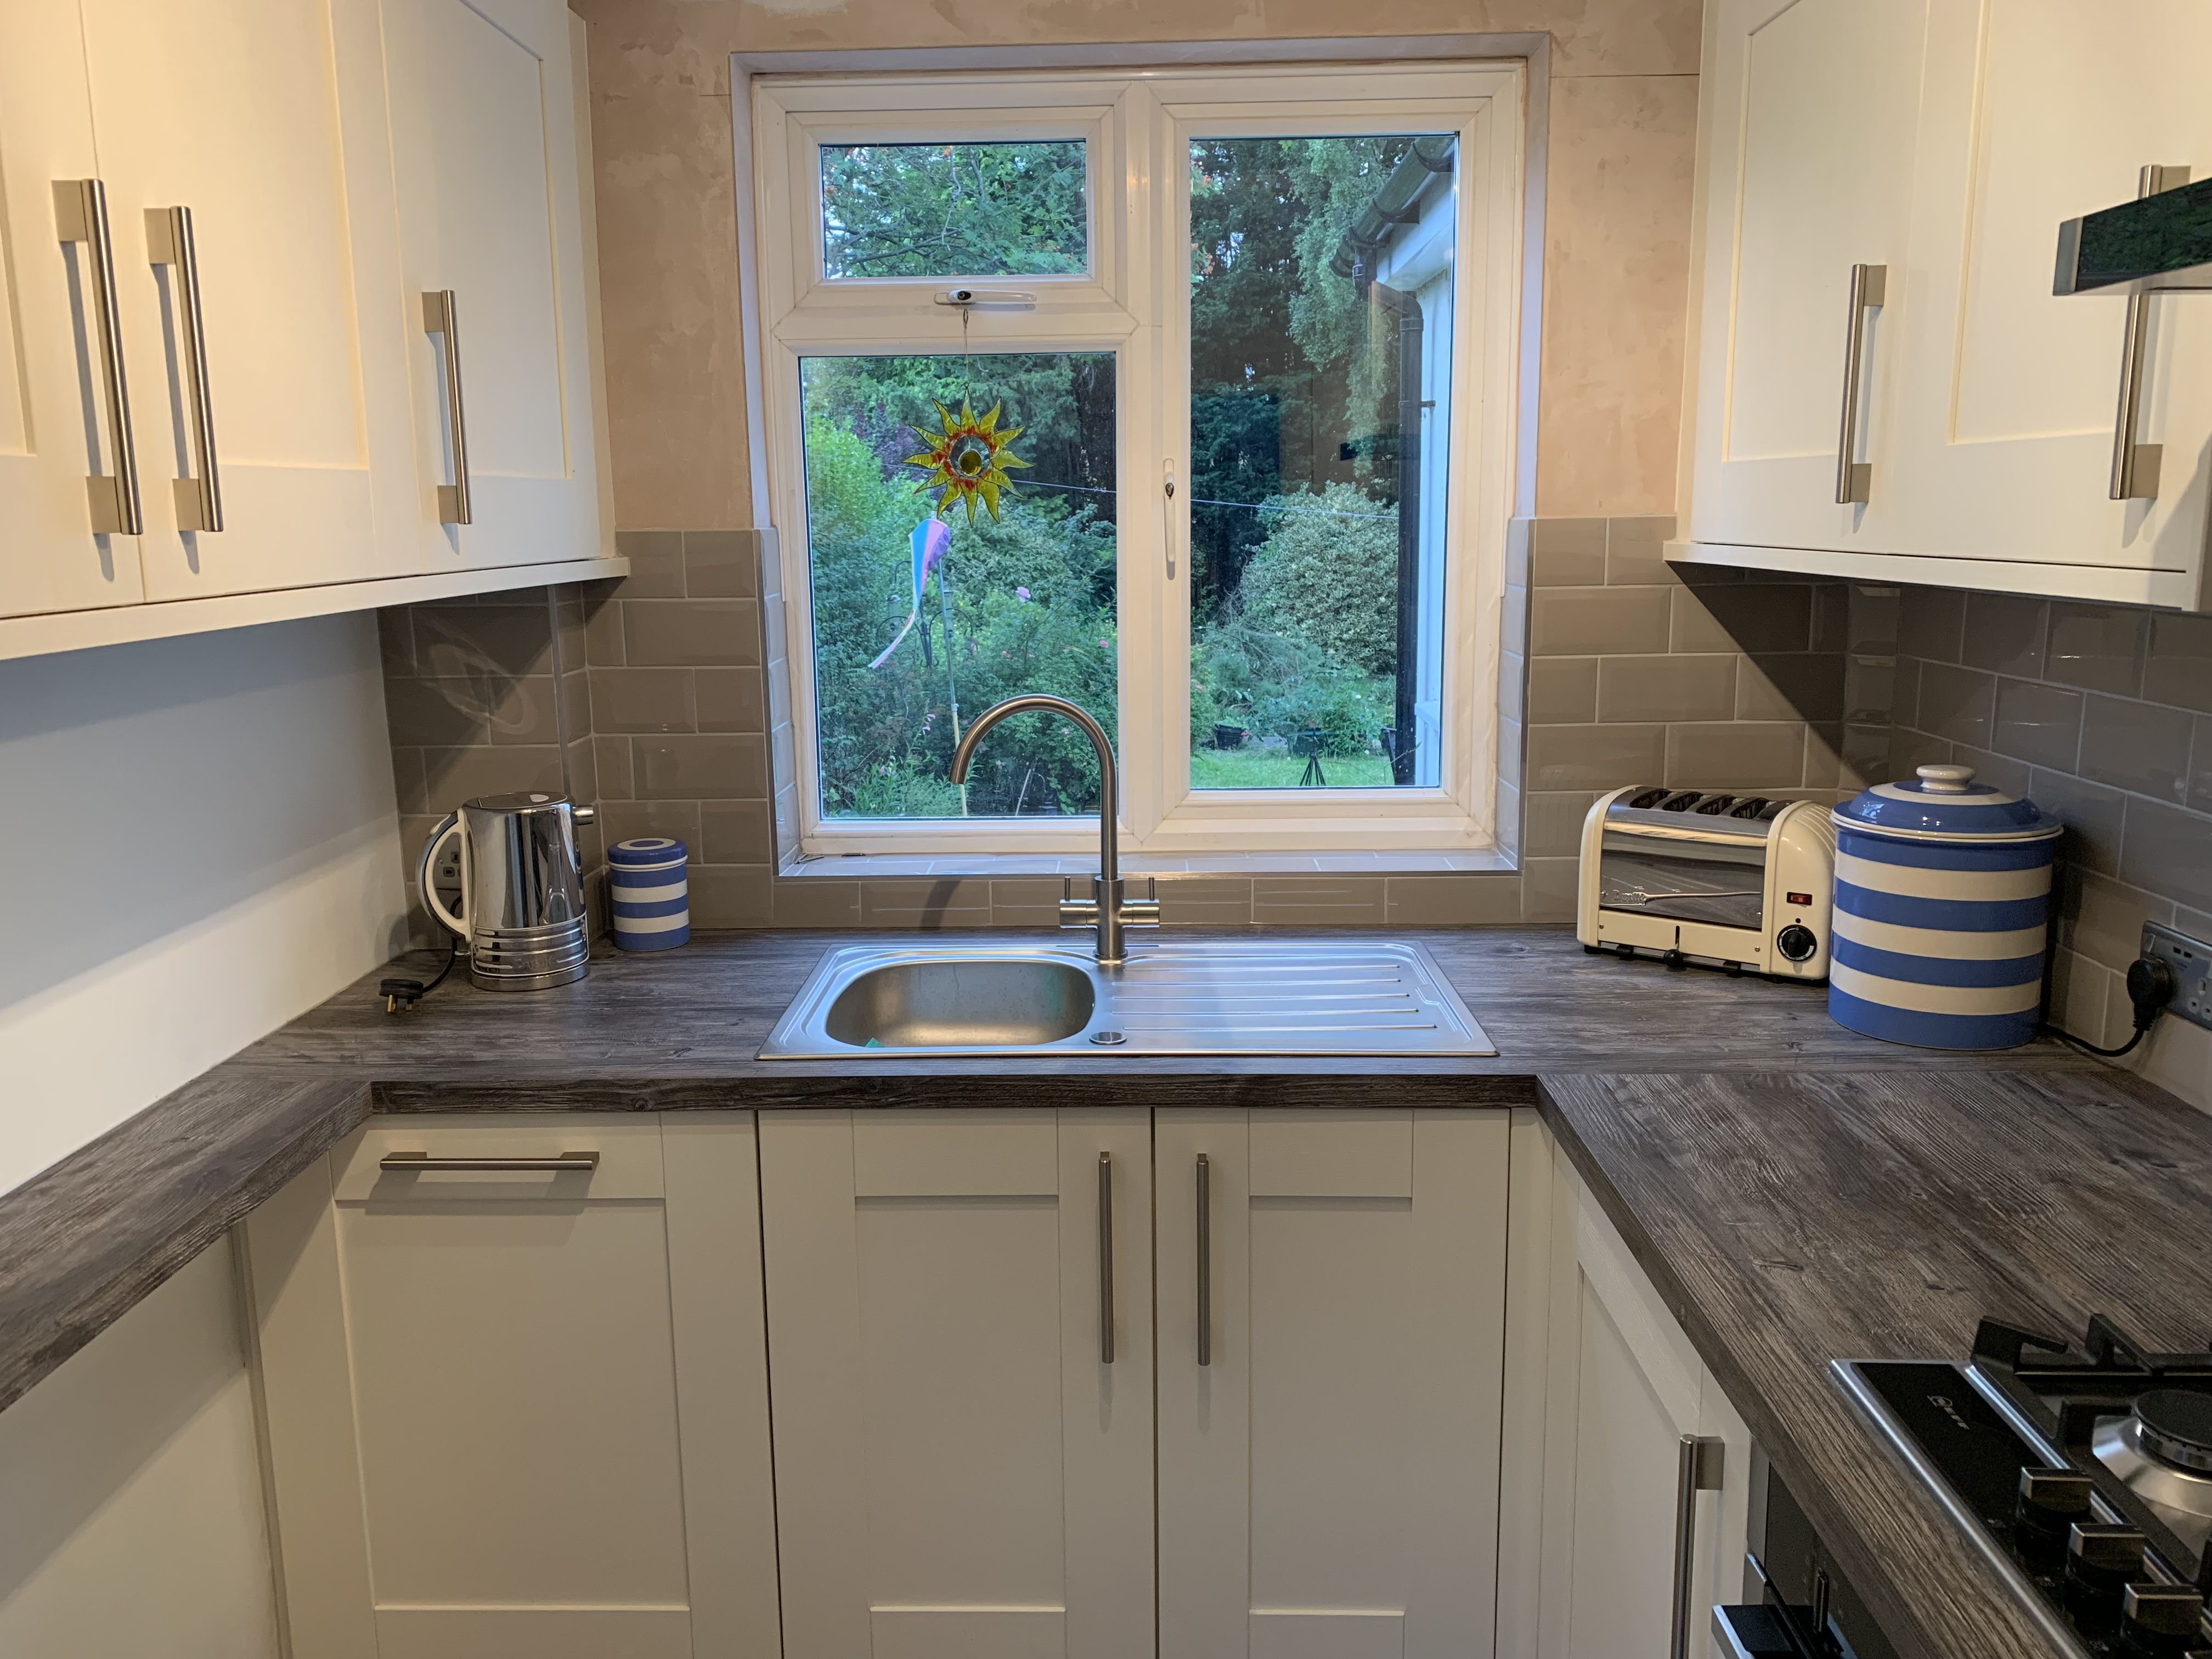 Wickes Milton Bone shaker kitchen with mystic pine worktop